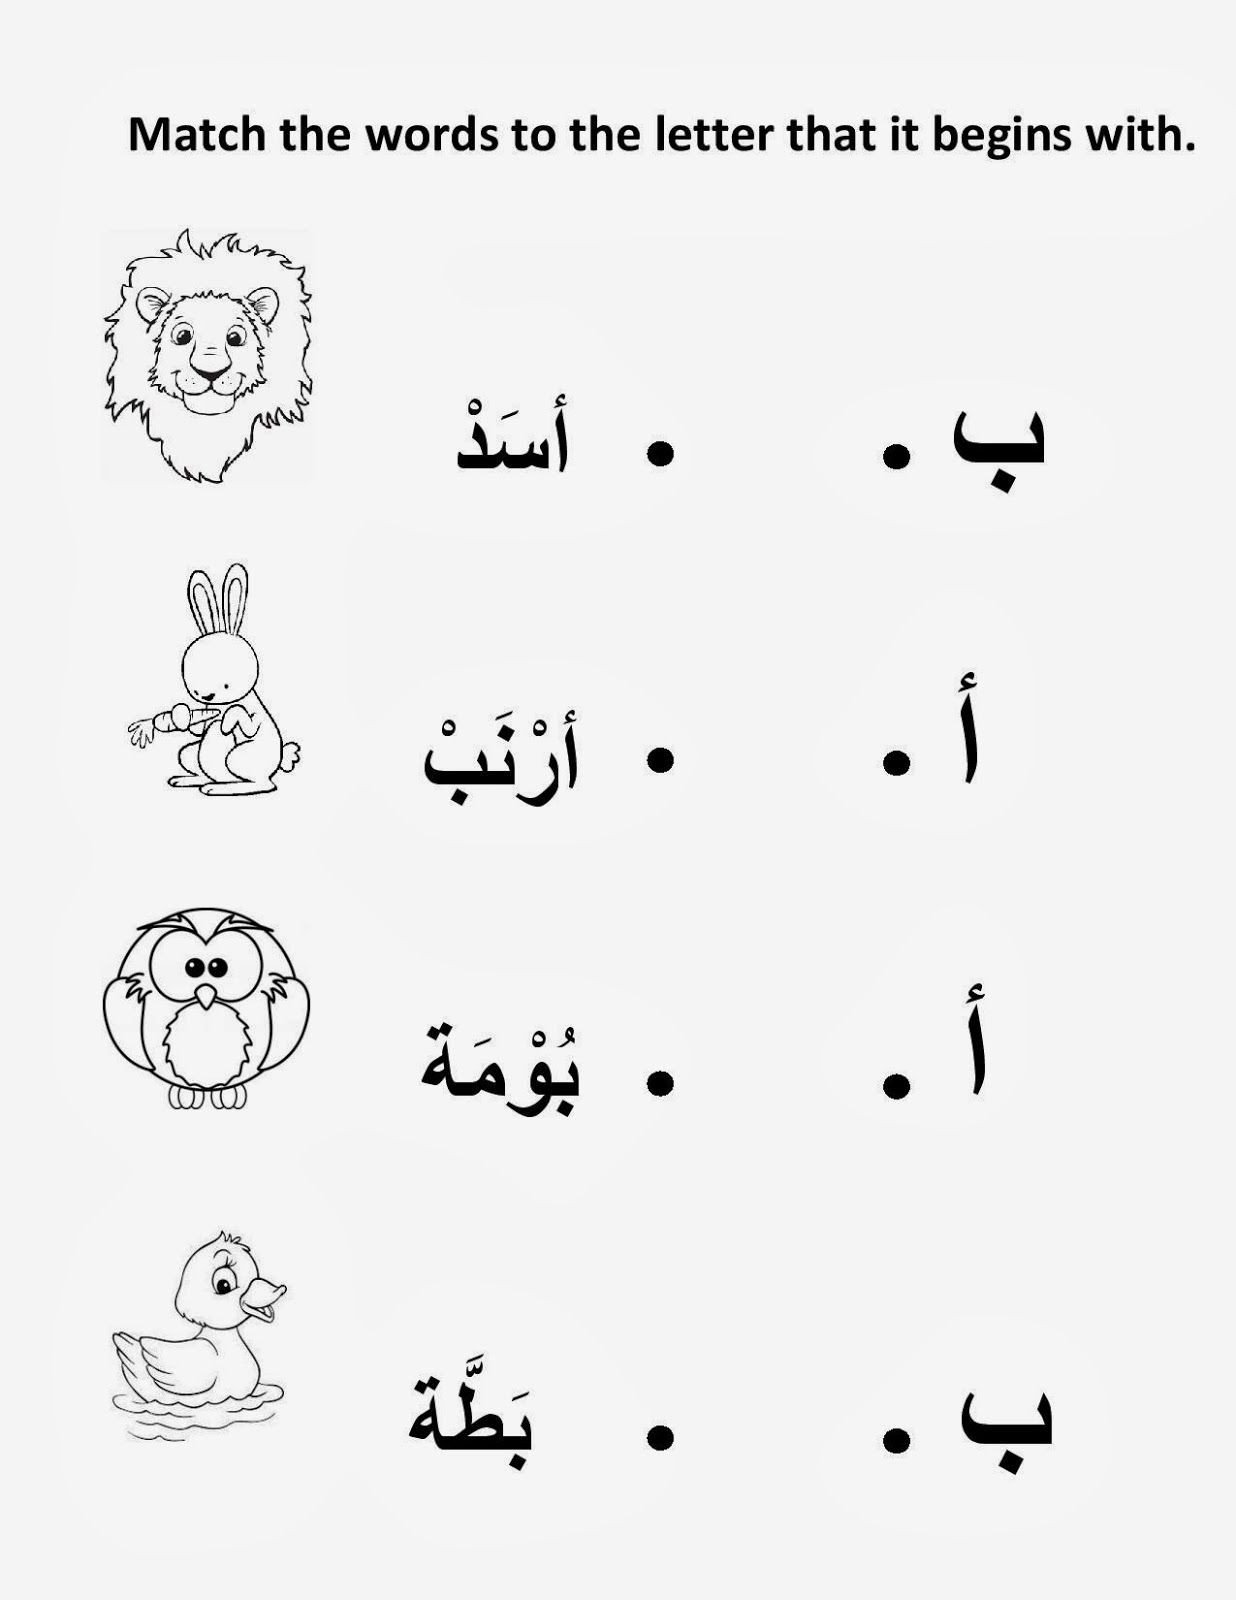 Arabic Letters Worksheets Arabic Letters Worksheet Preschool 1 236—1 600 Pixels